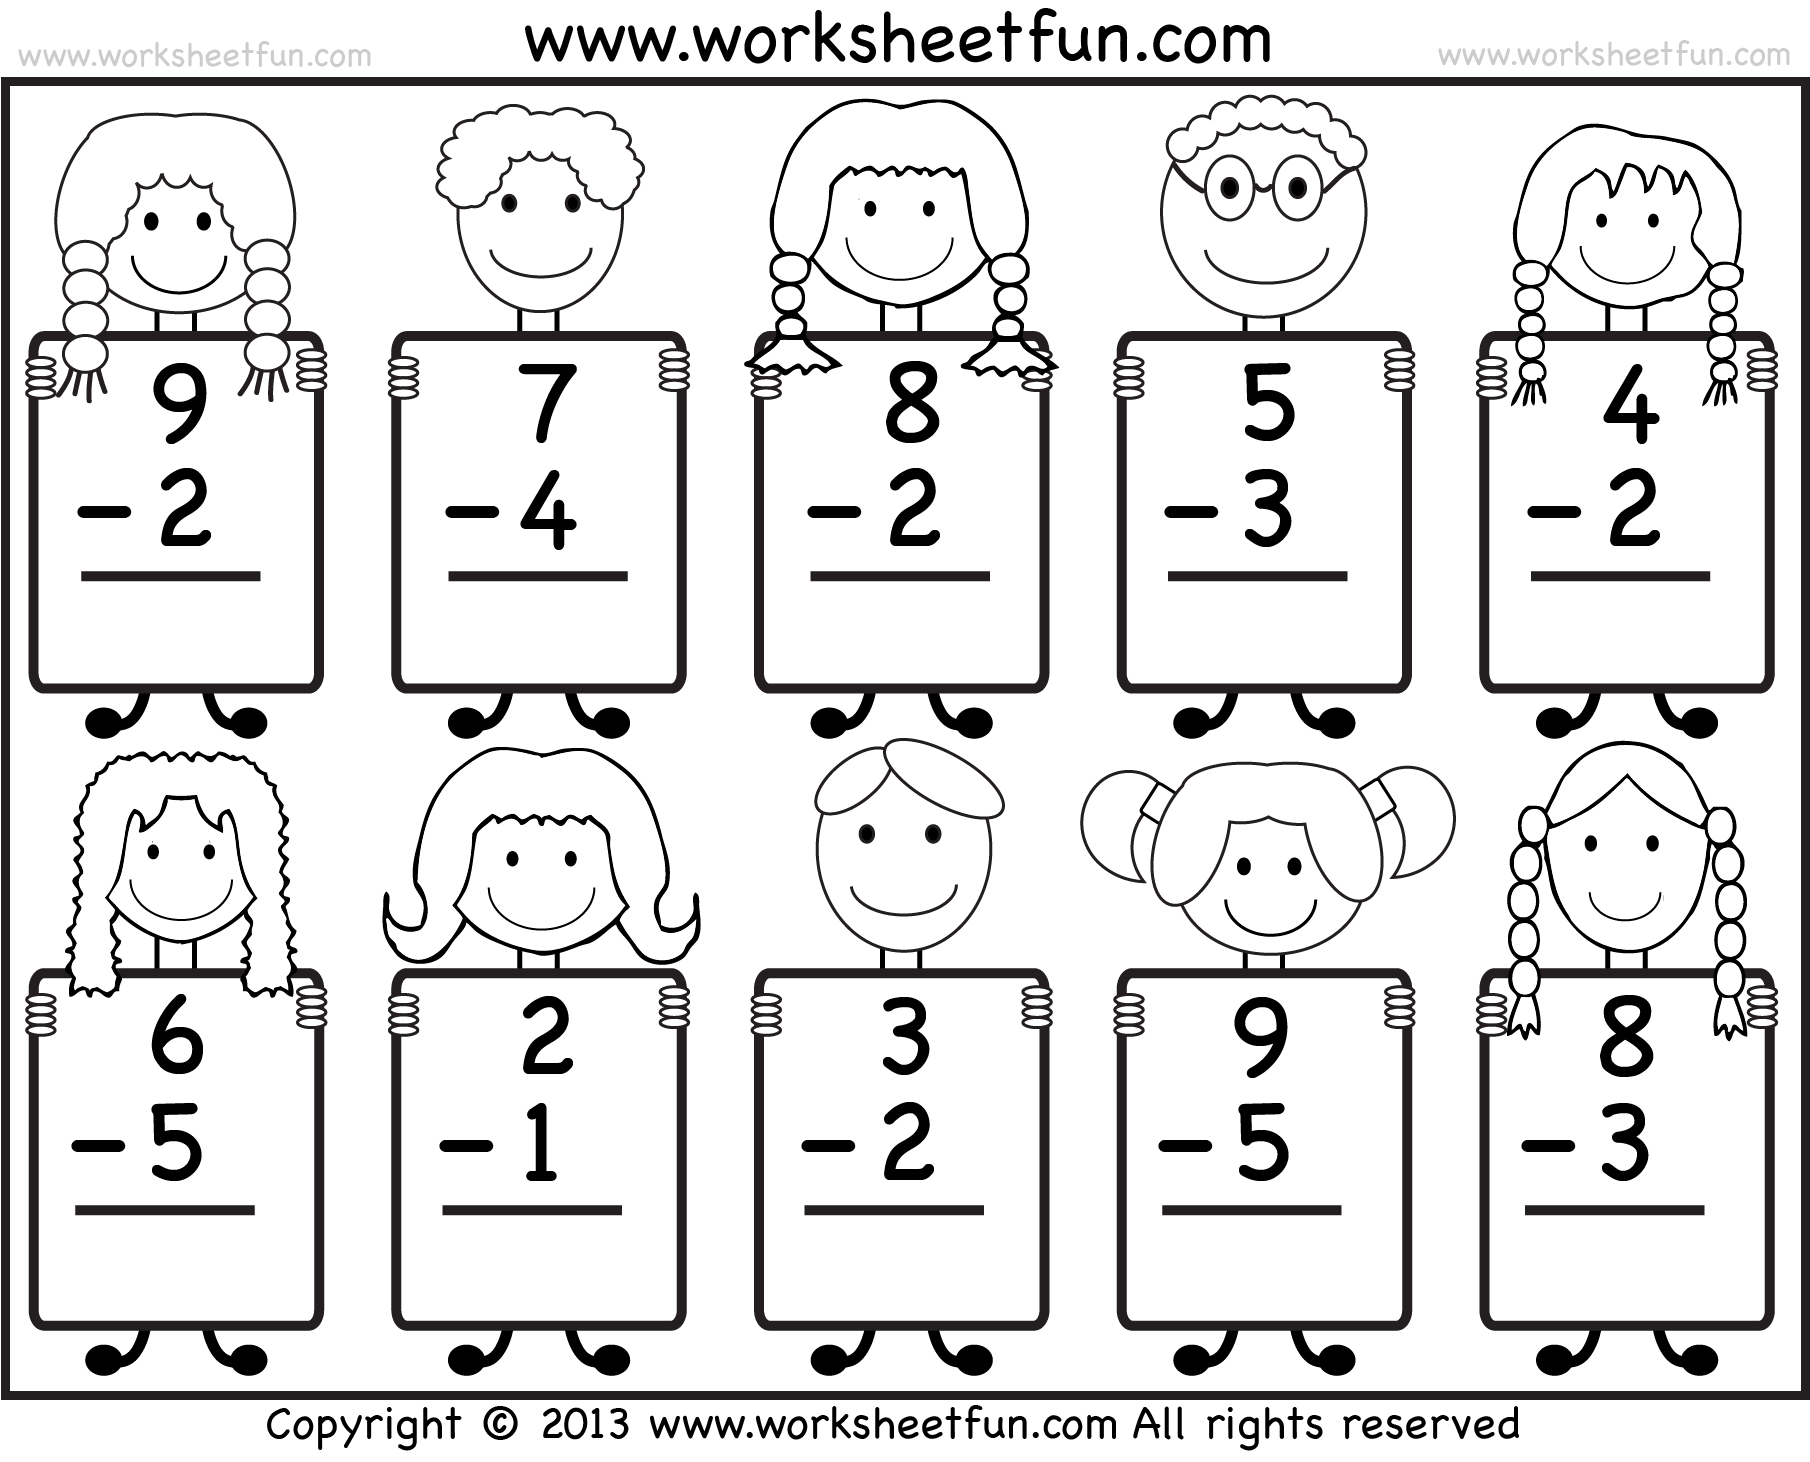 worksheet Free Math Printable Worksheets beginner subtraction 10 kindergarten worksheets worksheet